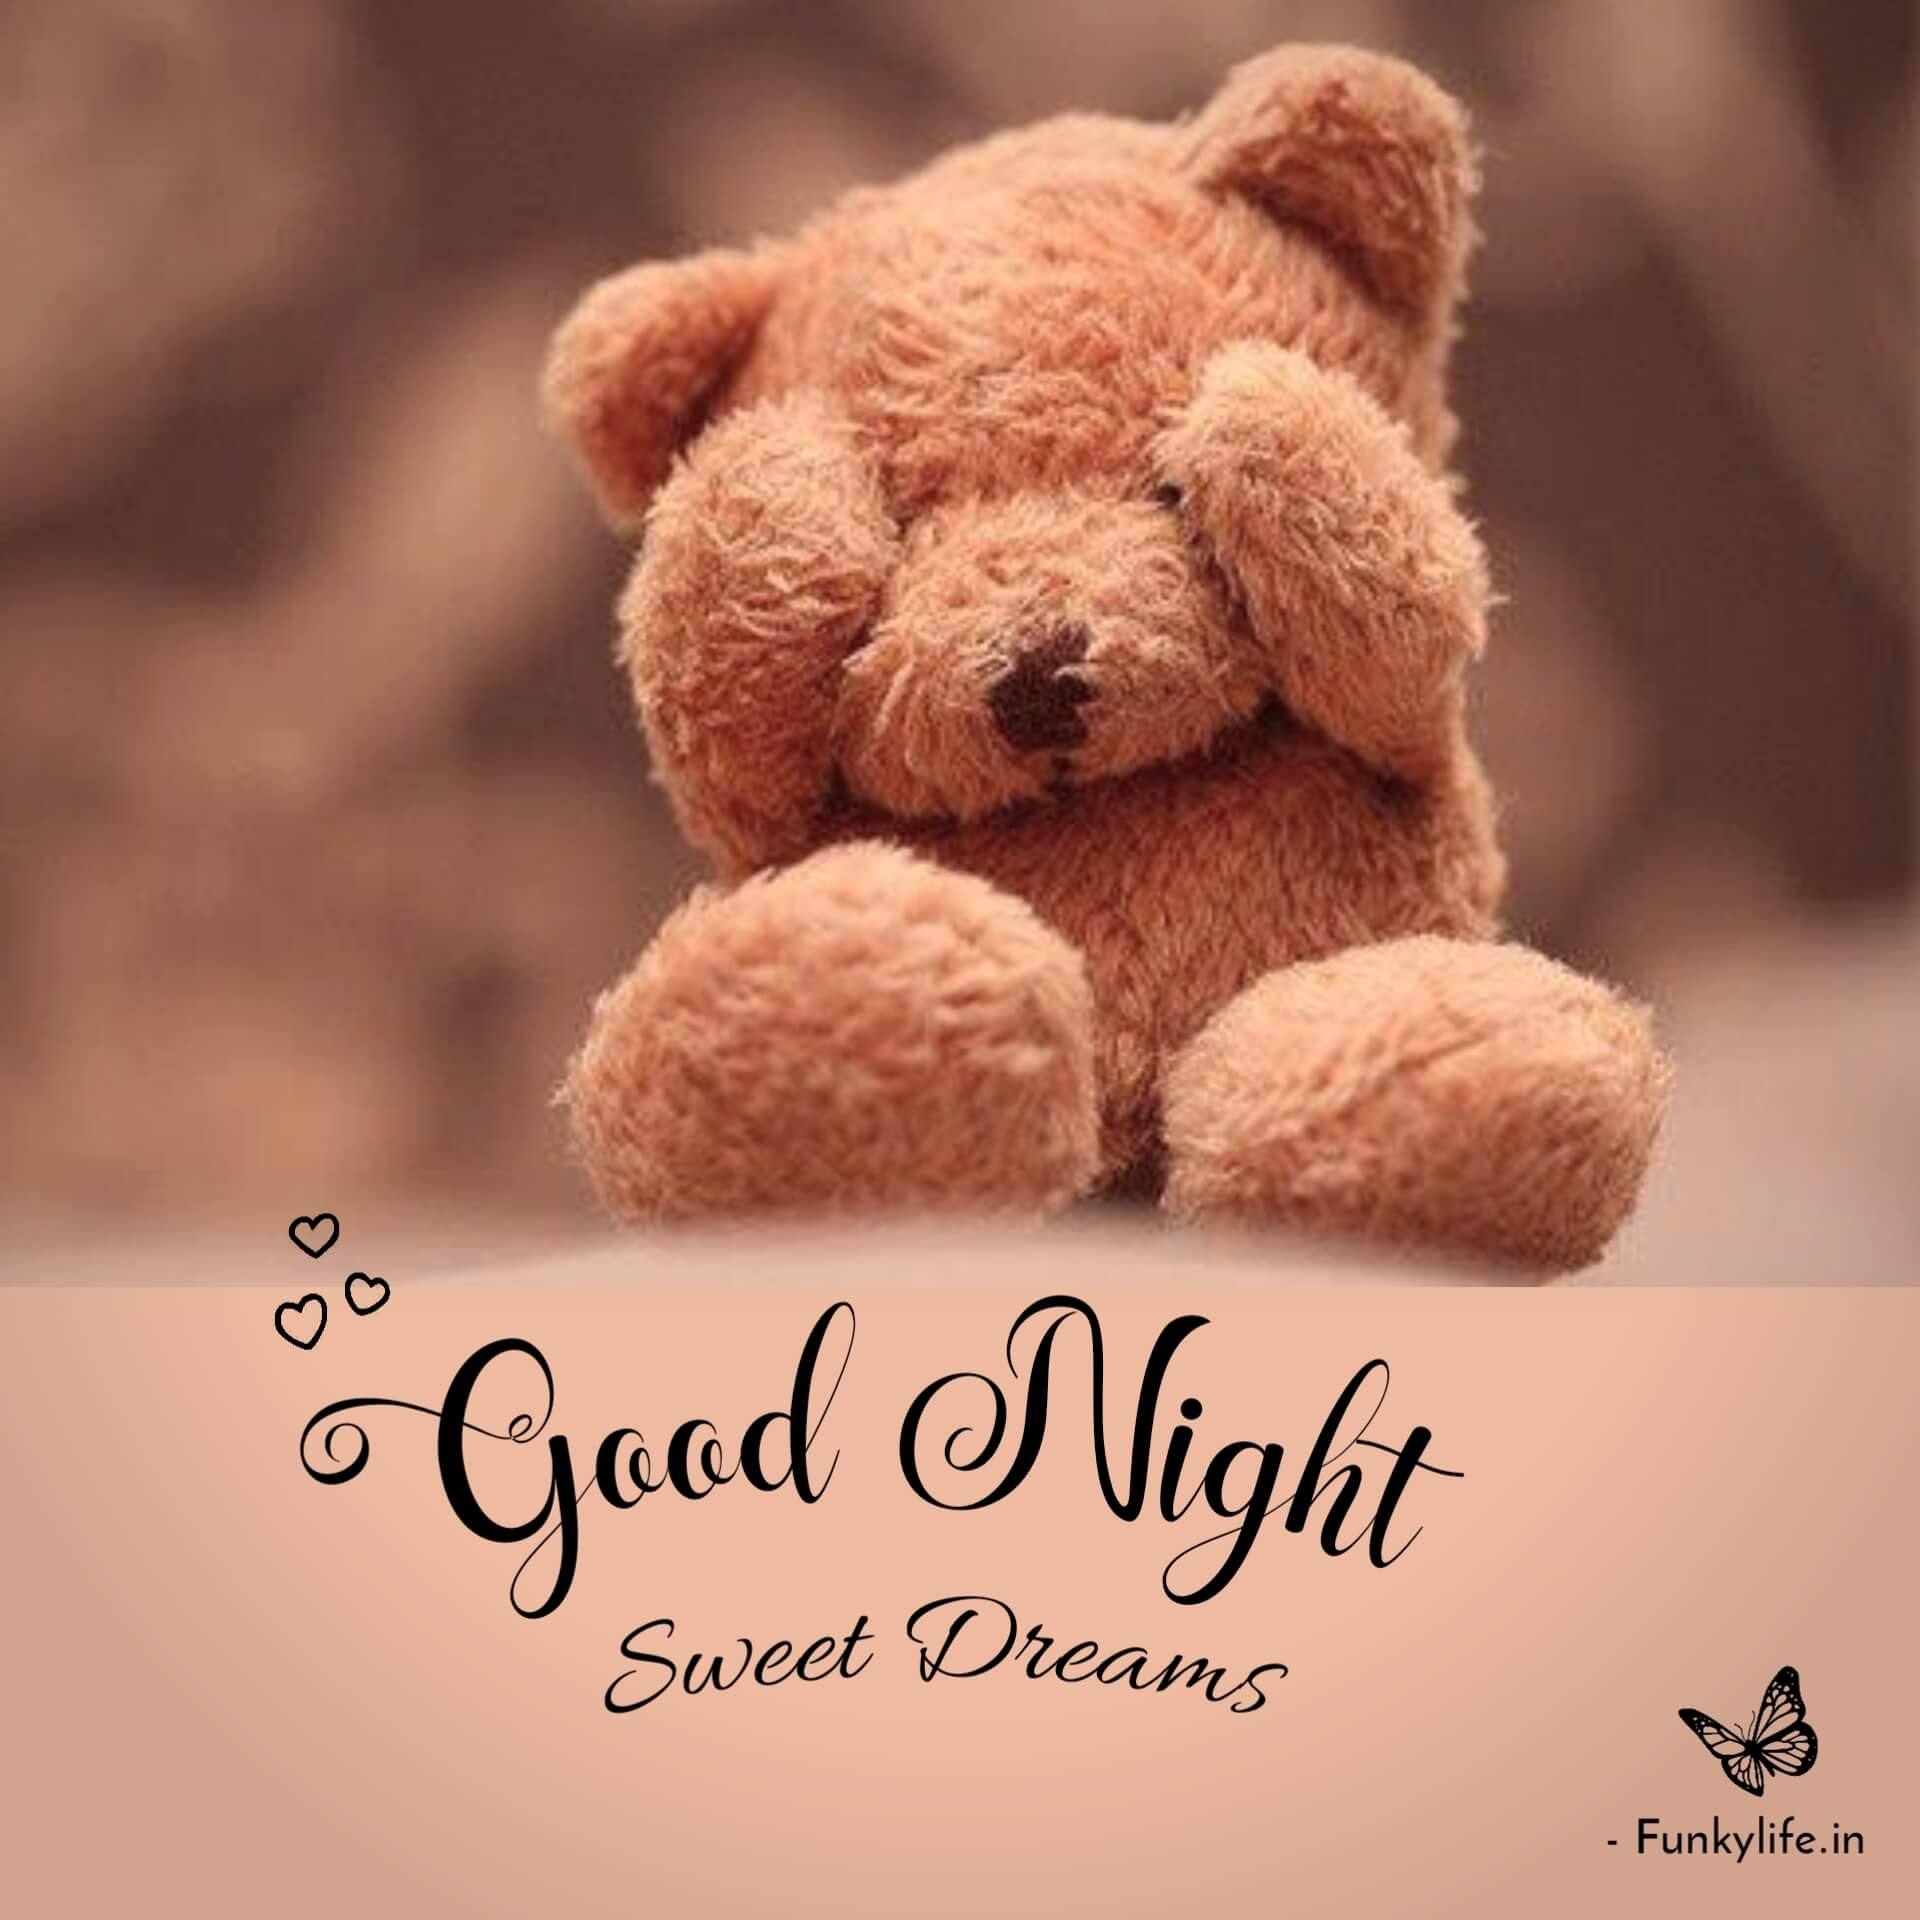 Good Night with teddy bear images